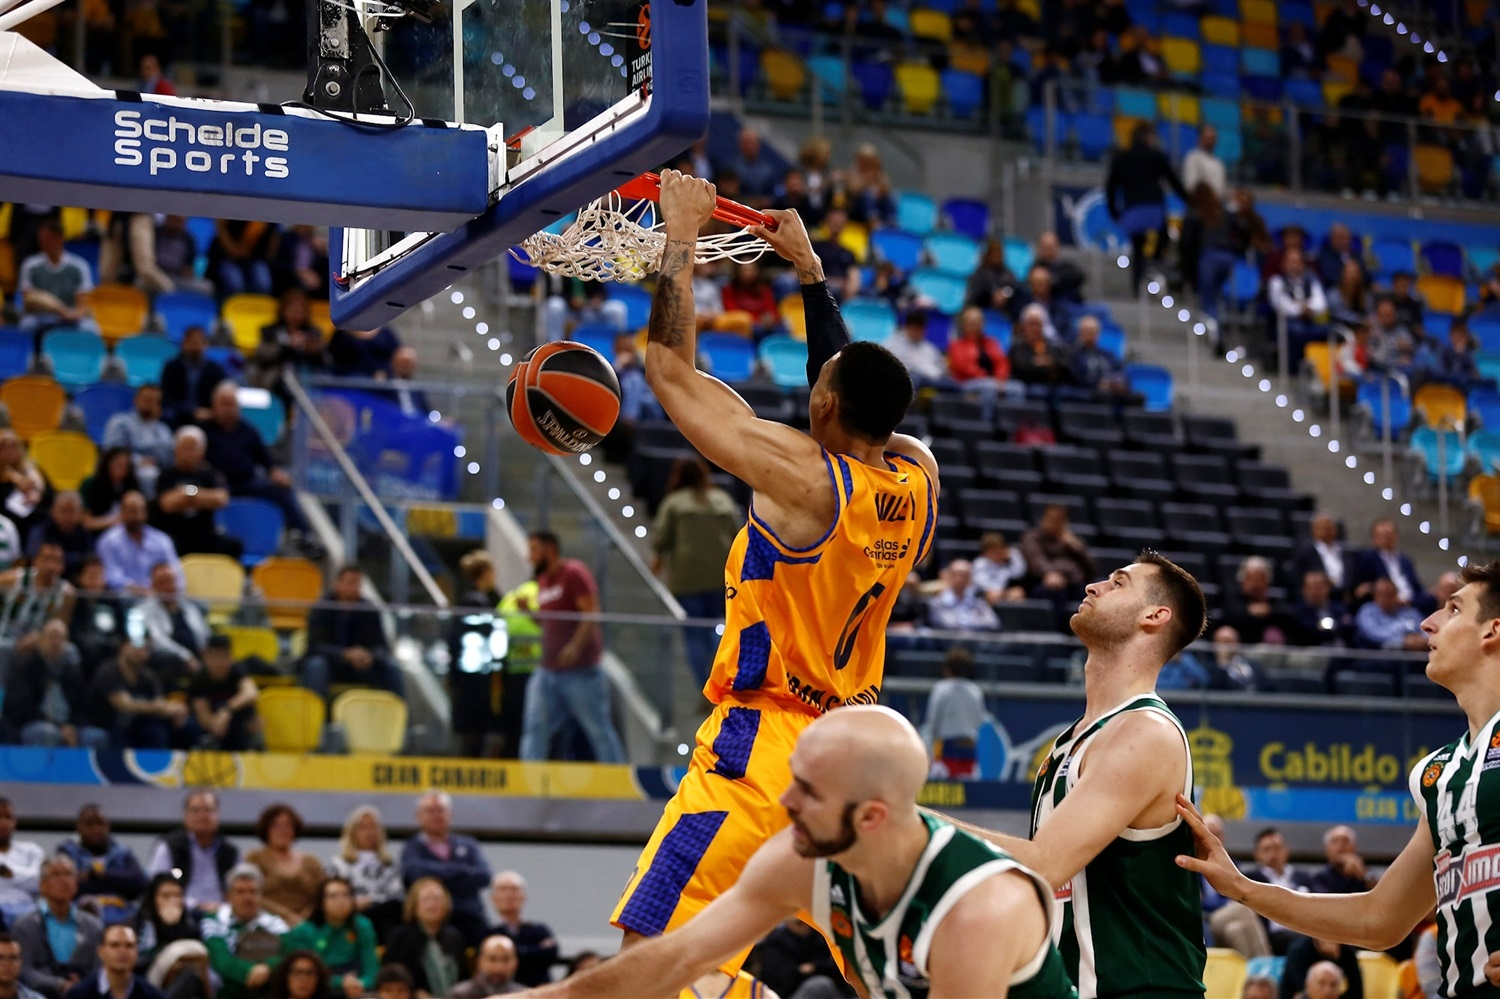 Jacob Wiley - Herbalife Gran Canaria - EB18